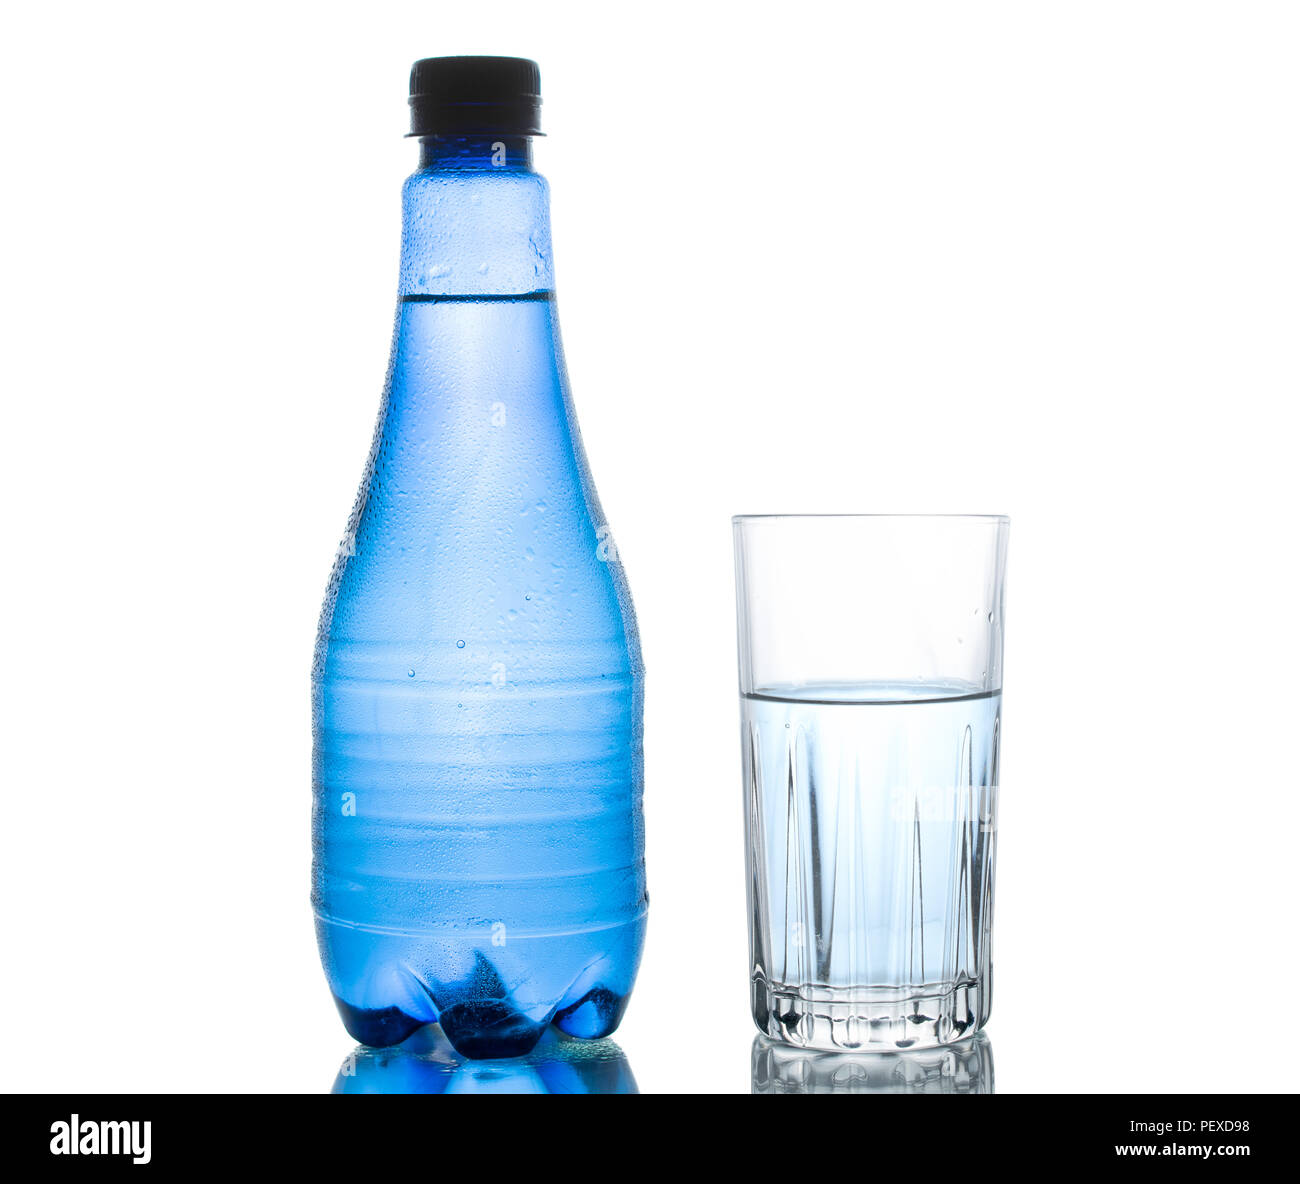 Blue water bottle isolated on white background with small water droplets and a clear drinking glass - Stock Image